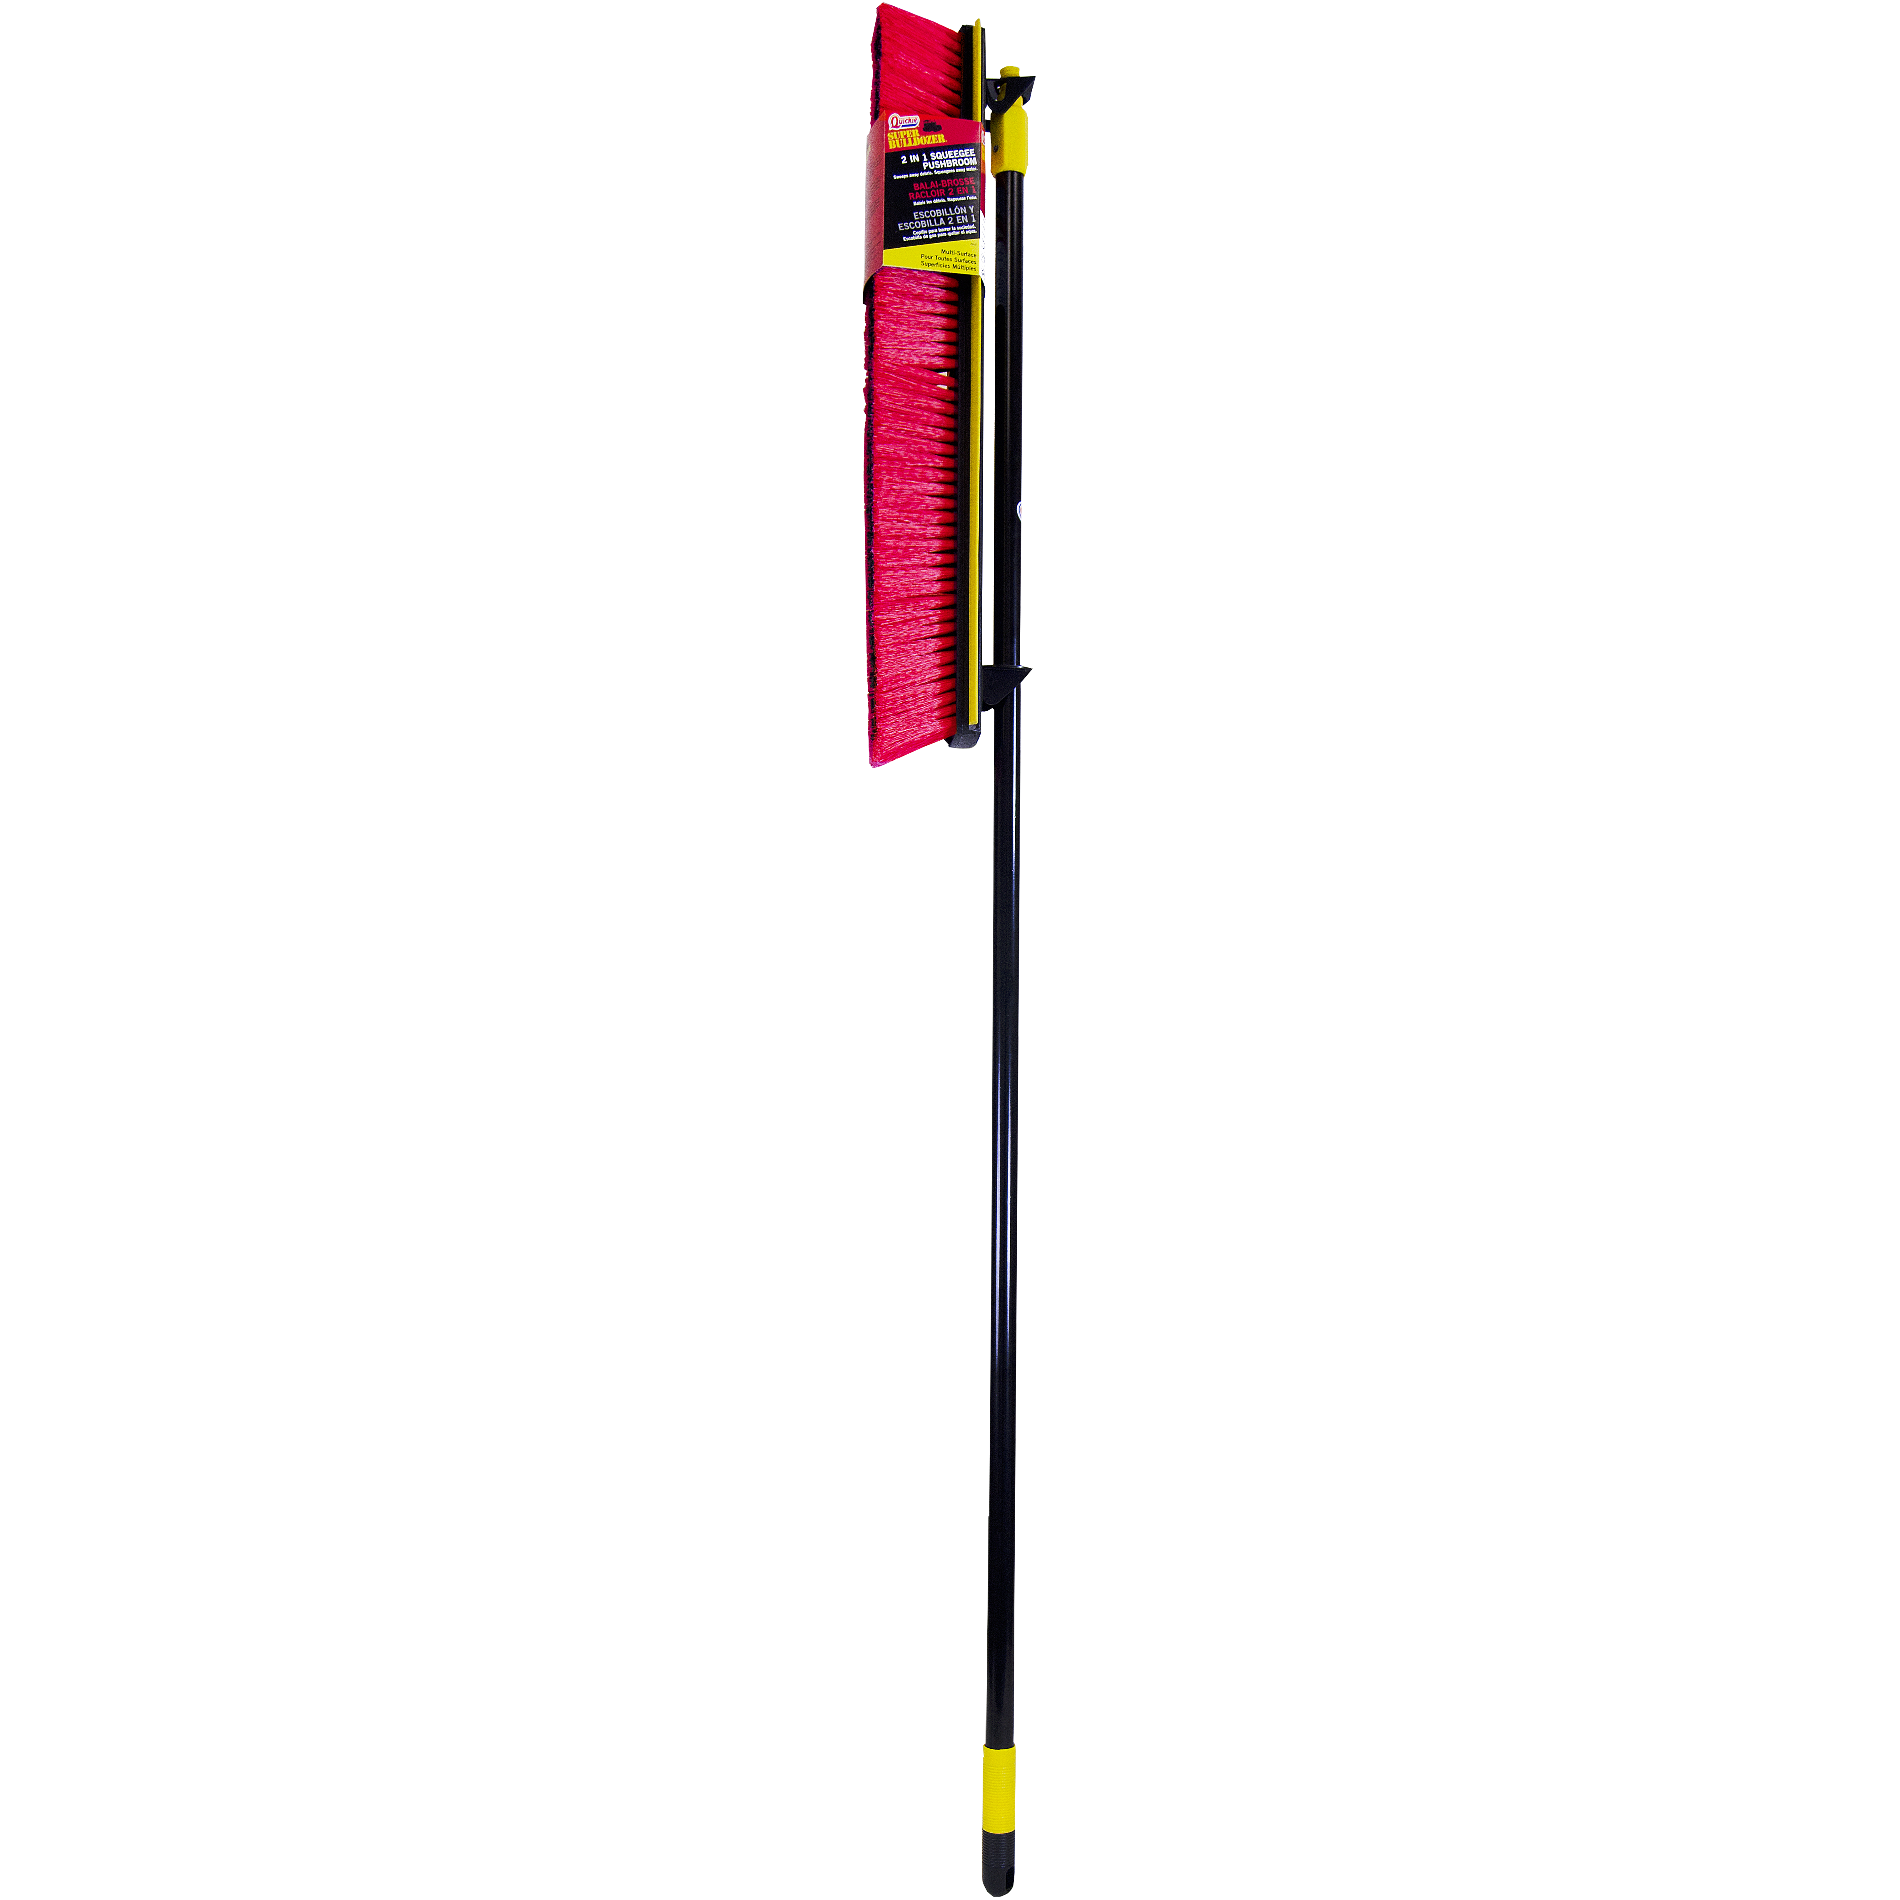 Quickie 2 n 1 24 in. Super Bulldozer Squeegee Pushbroom 00635-1